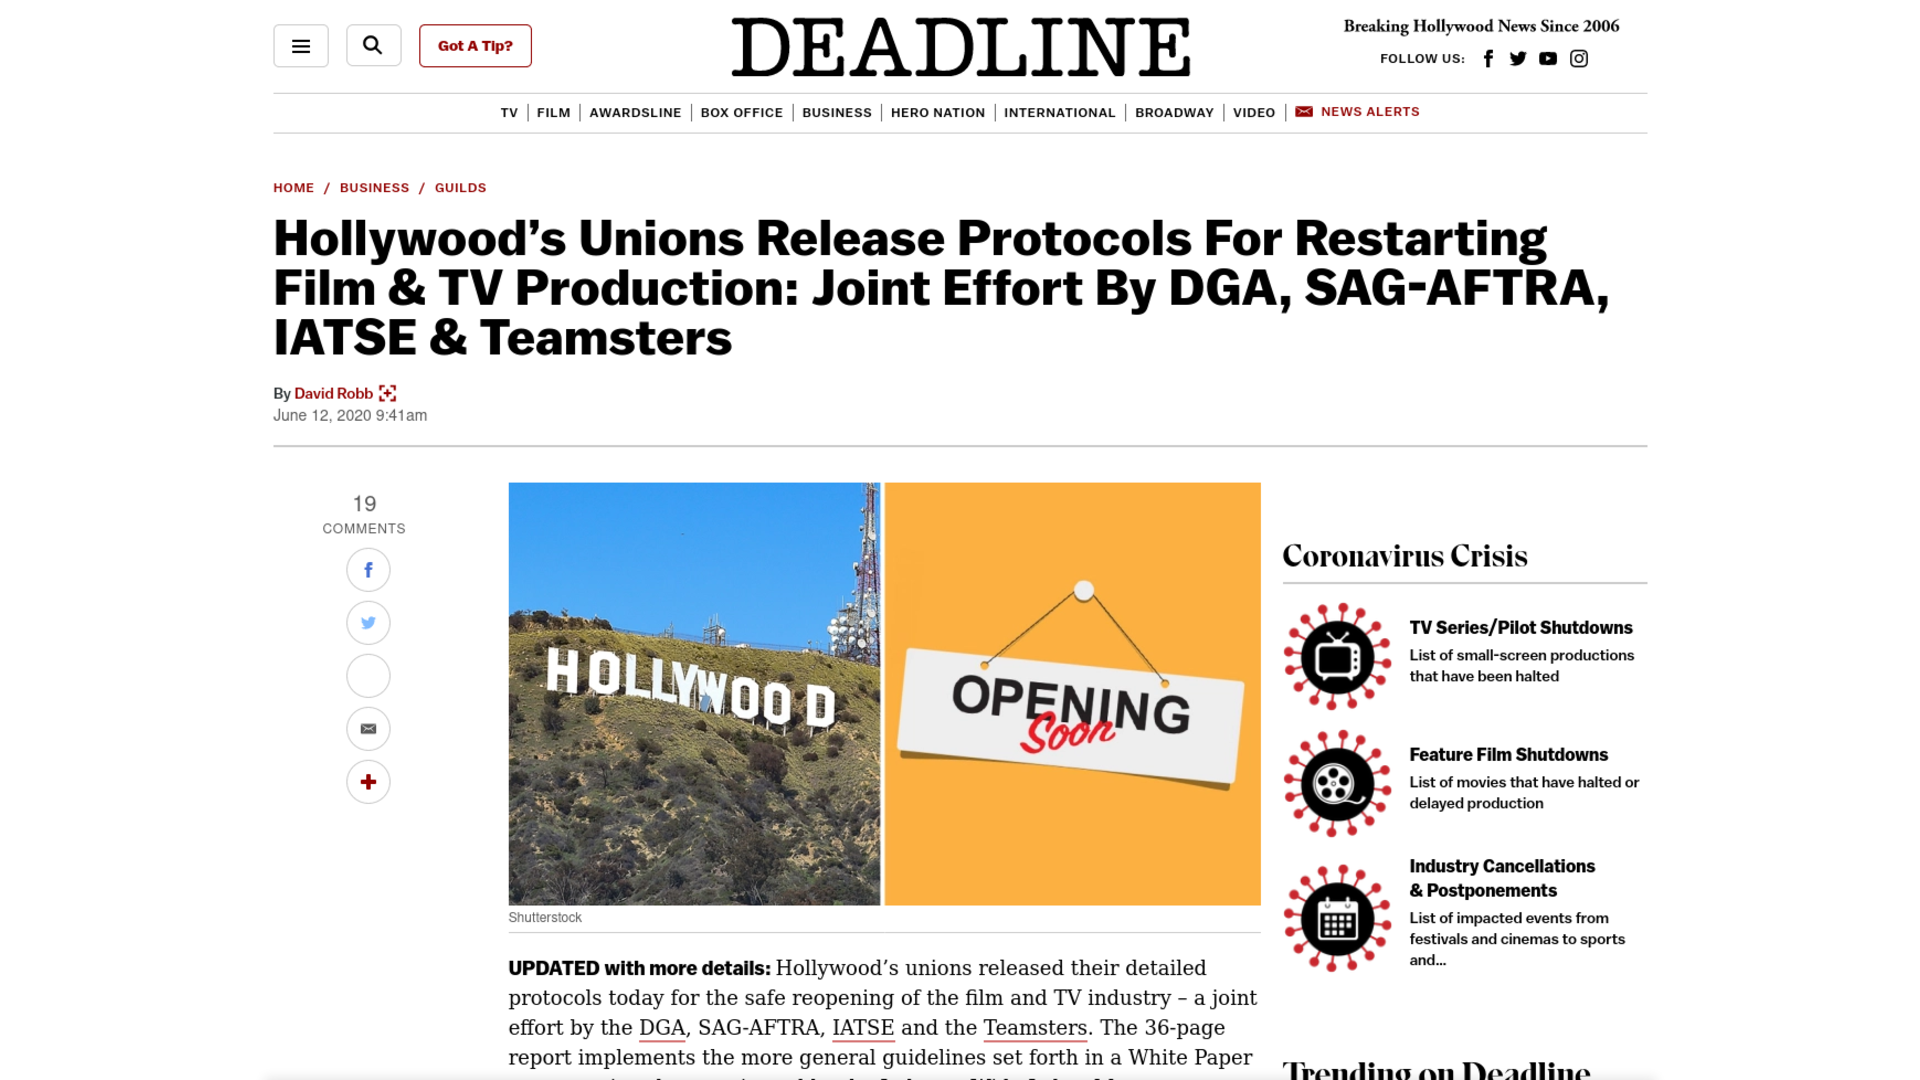 Fairness Rocks News Hollywood's Unions Release Protocols For Restarting Film & TV Production: Joint Effort By DGA, SAG-AFTRA, IATSE & Teamsters